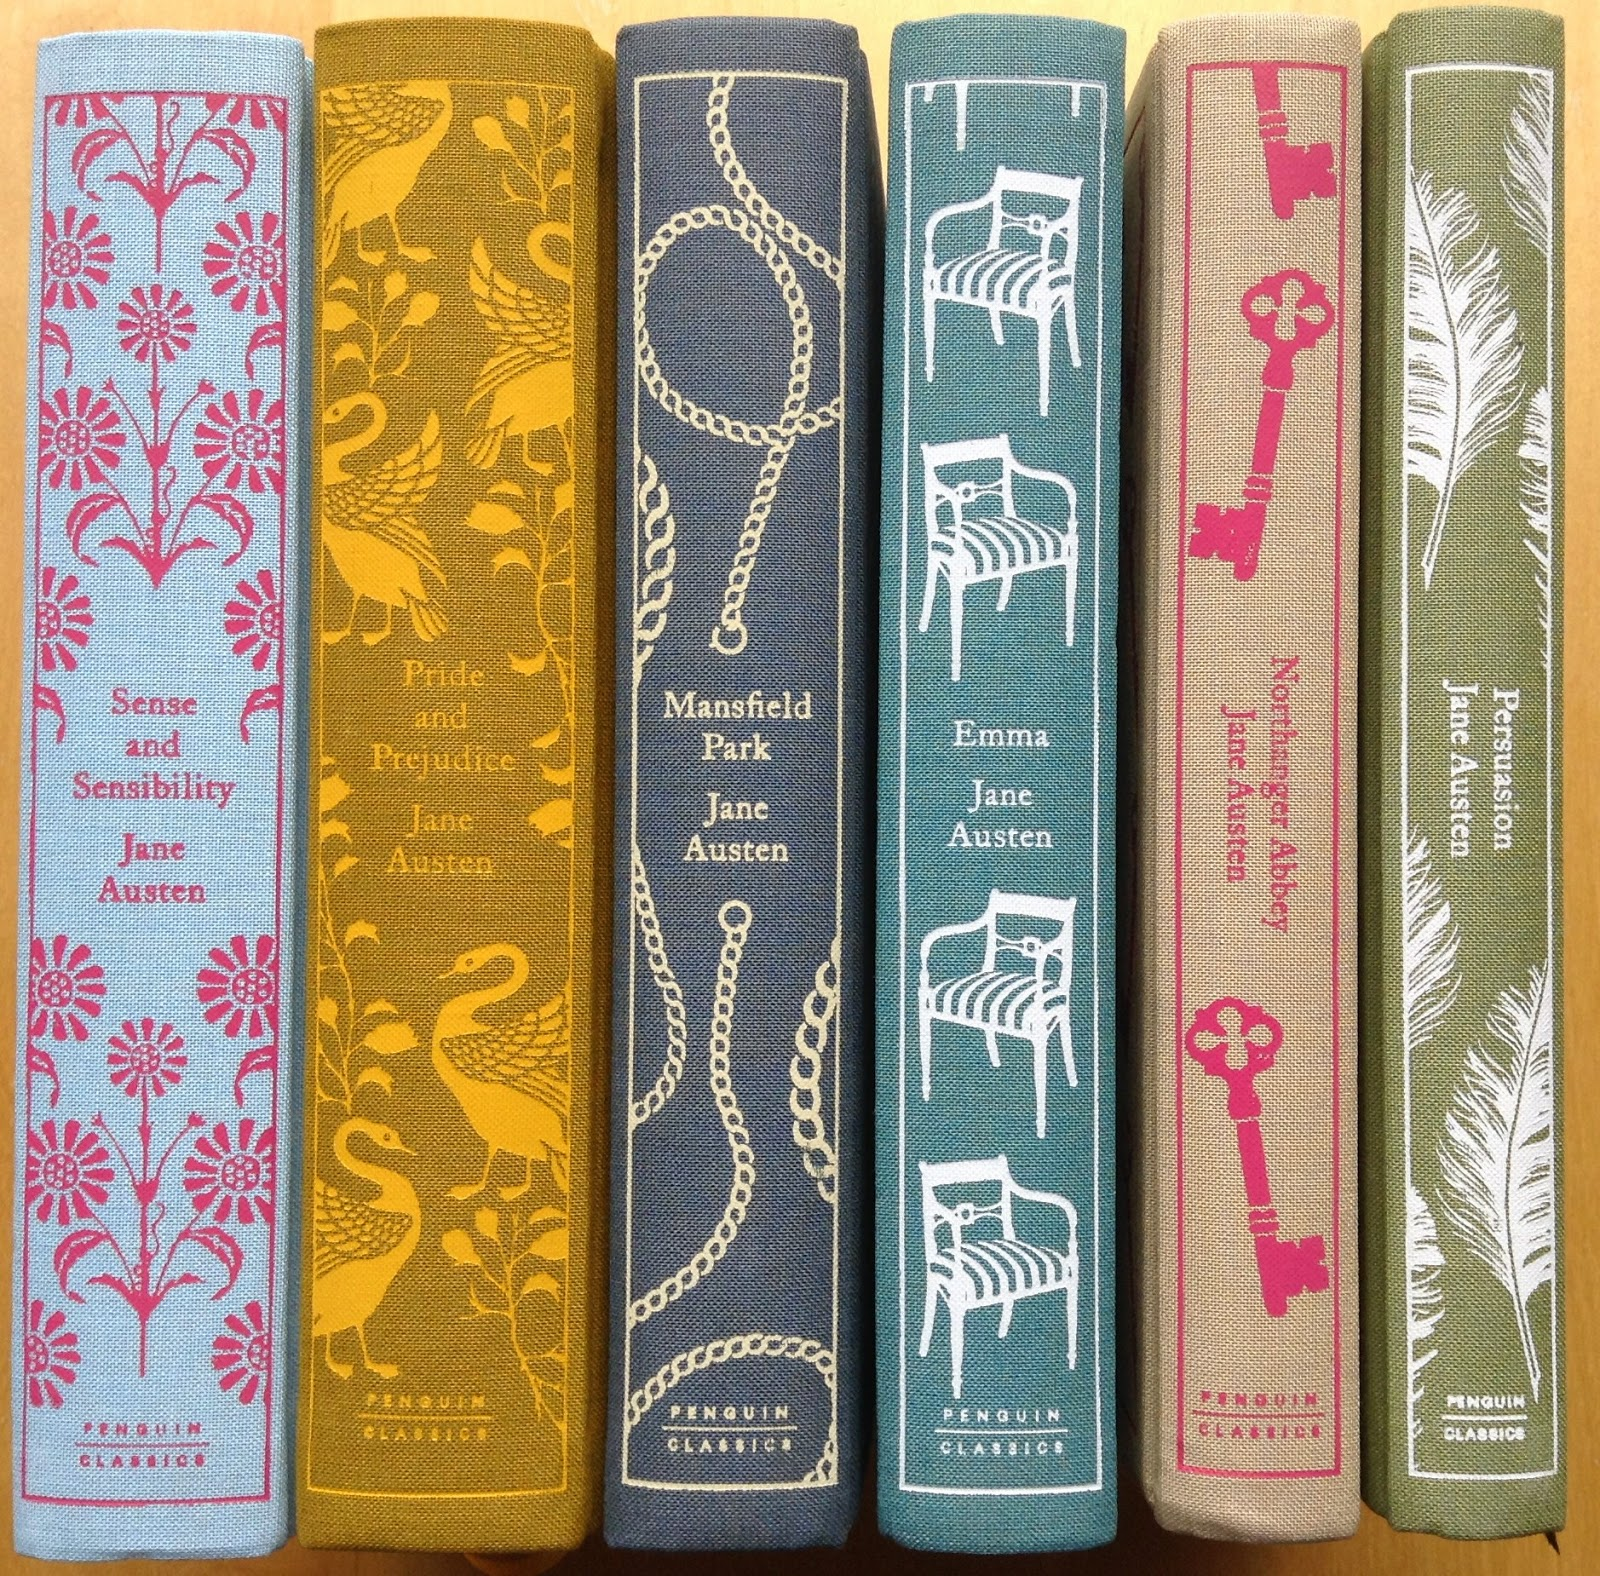 Book Spines - Clothbound Classics by Jane Austen